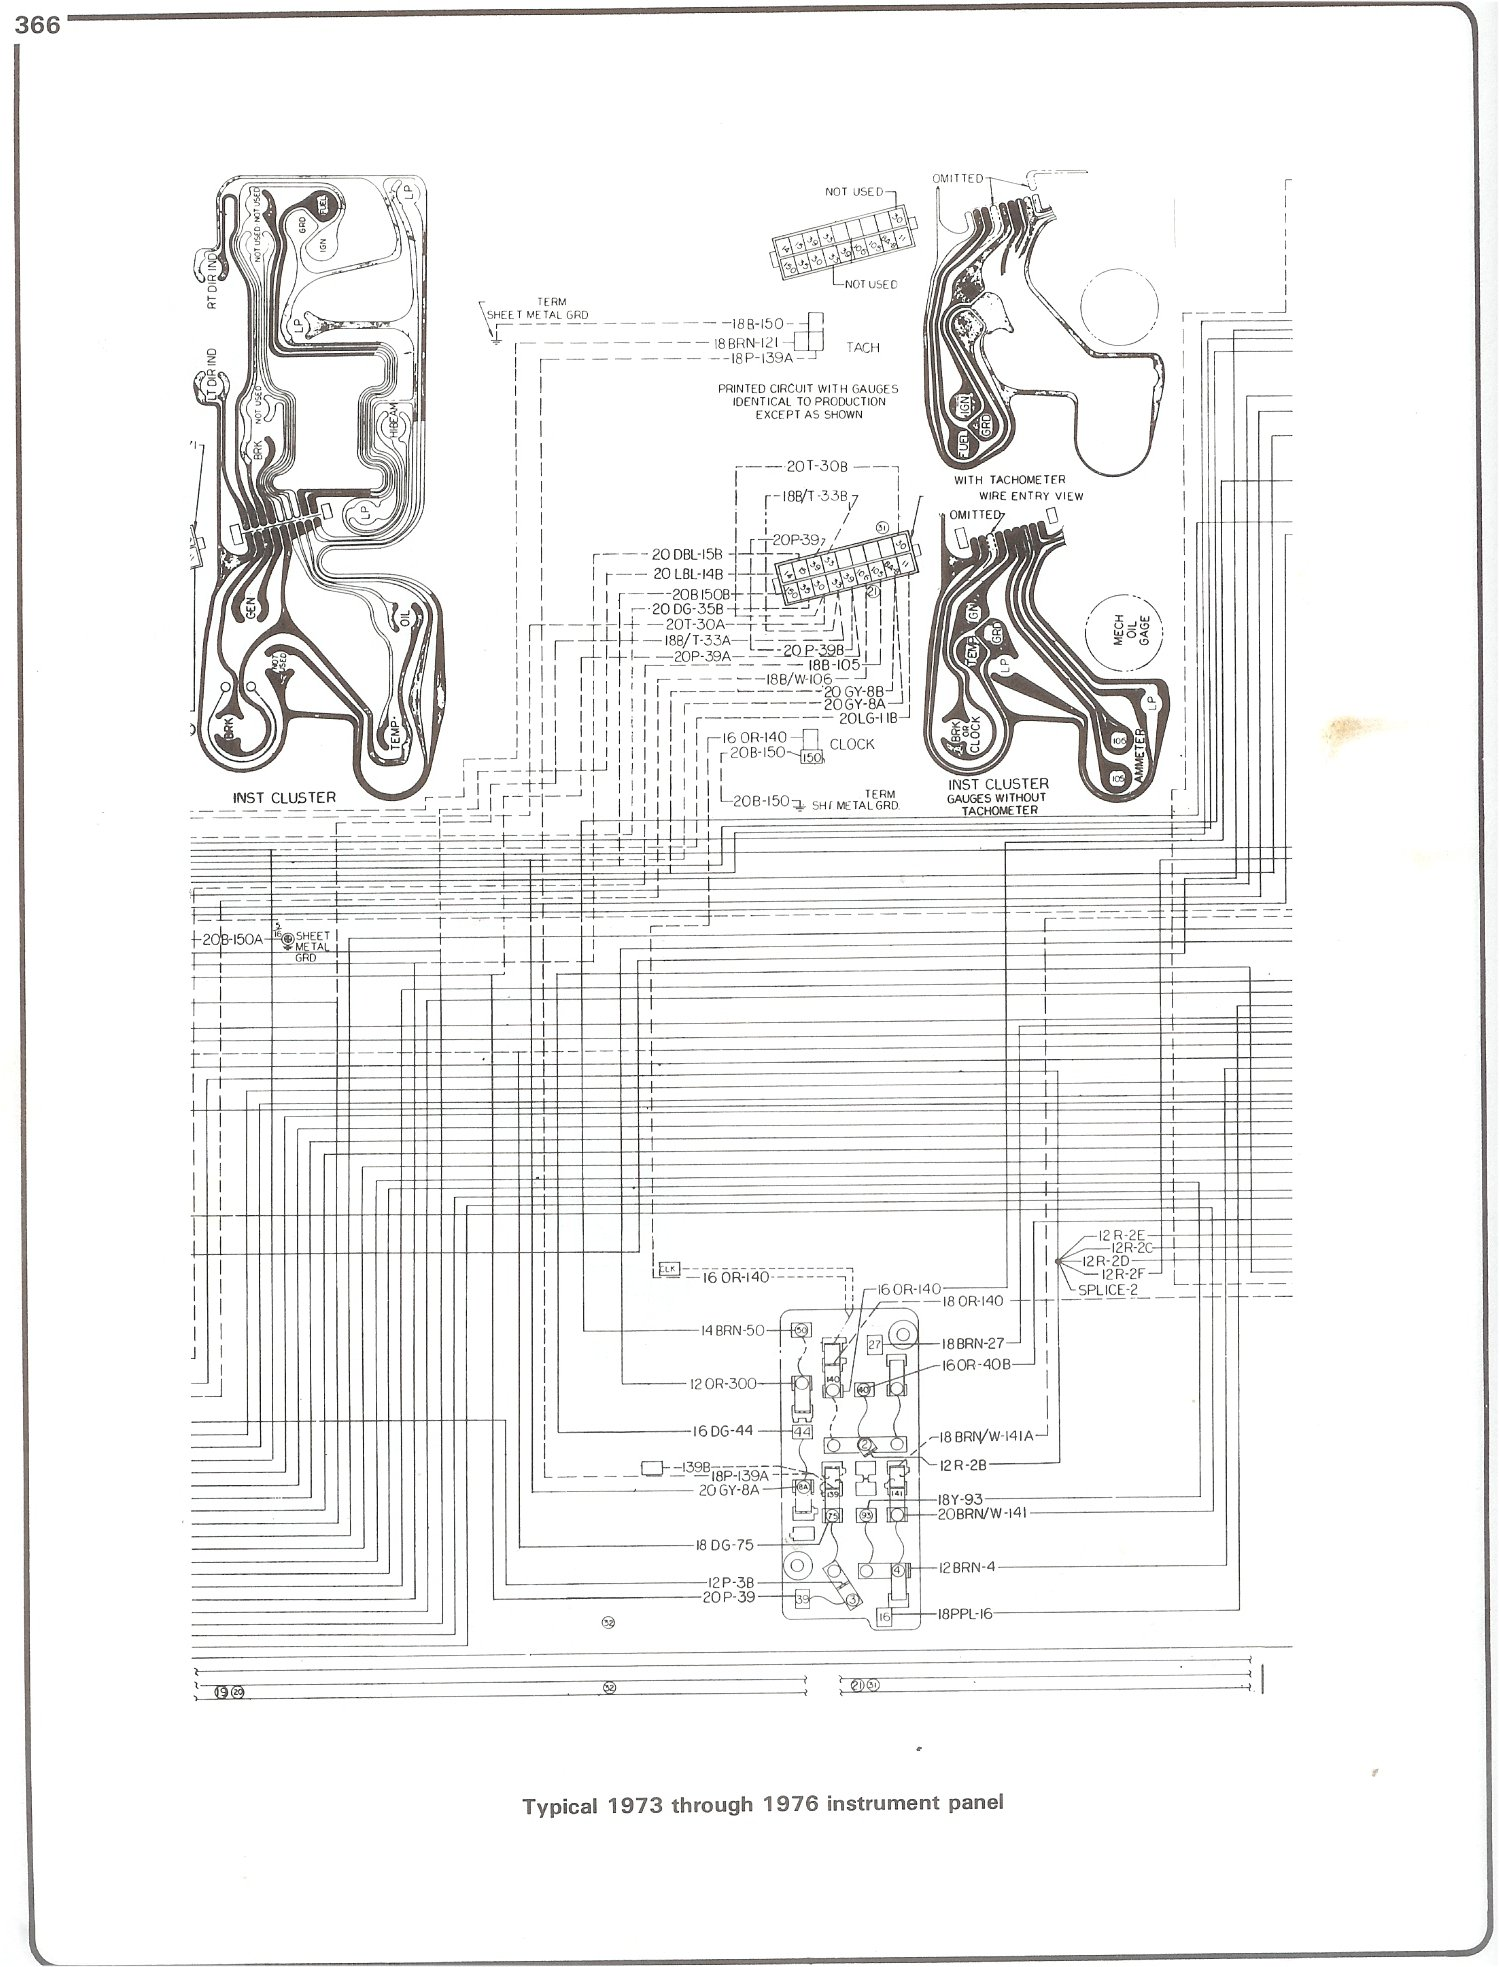 complete 73 87 wiring diagrams rh forum 73 87chevytrucks com 1978 chevy wiring diagram 1978 chevrolet monte carlo wiring diagram